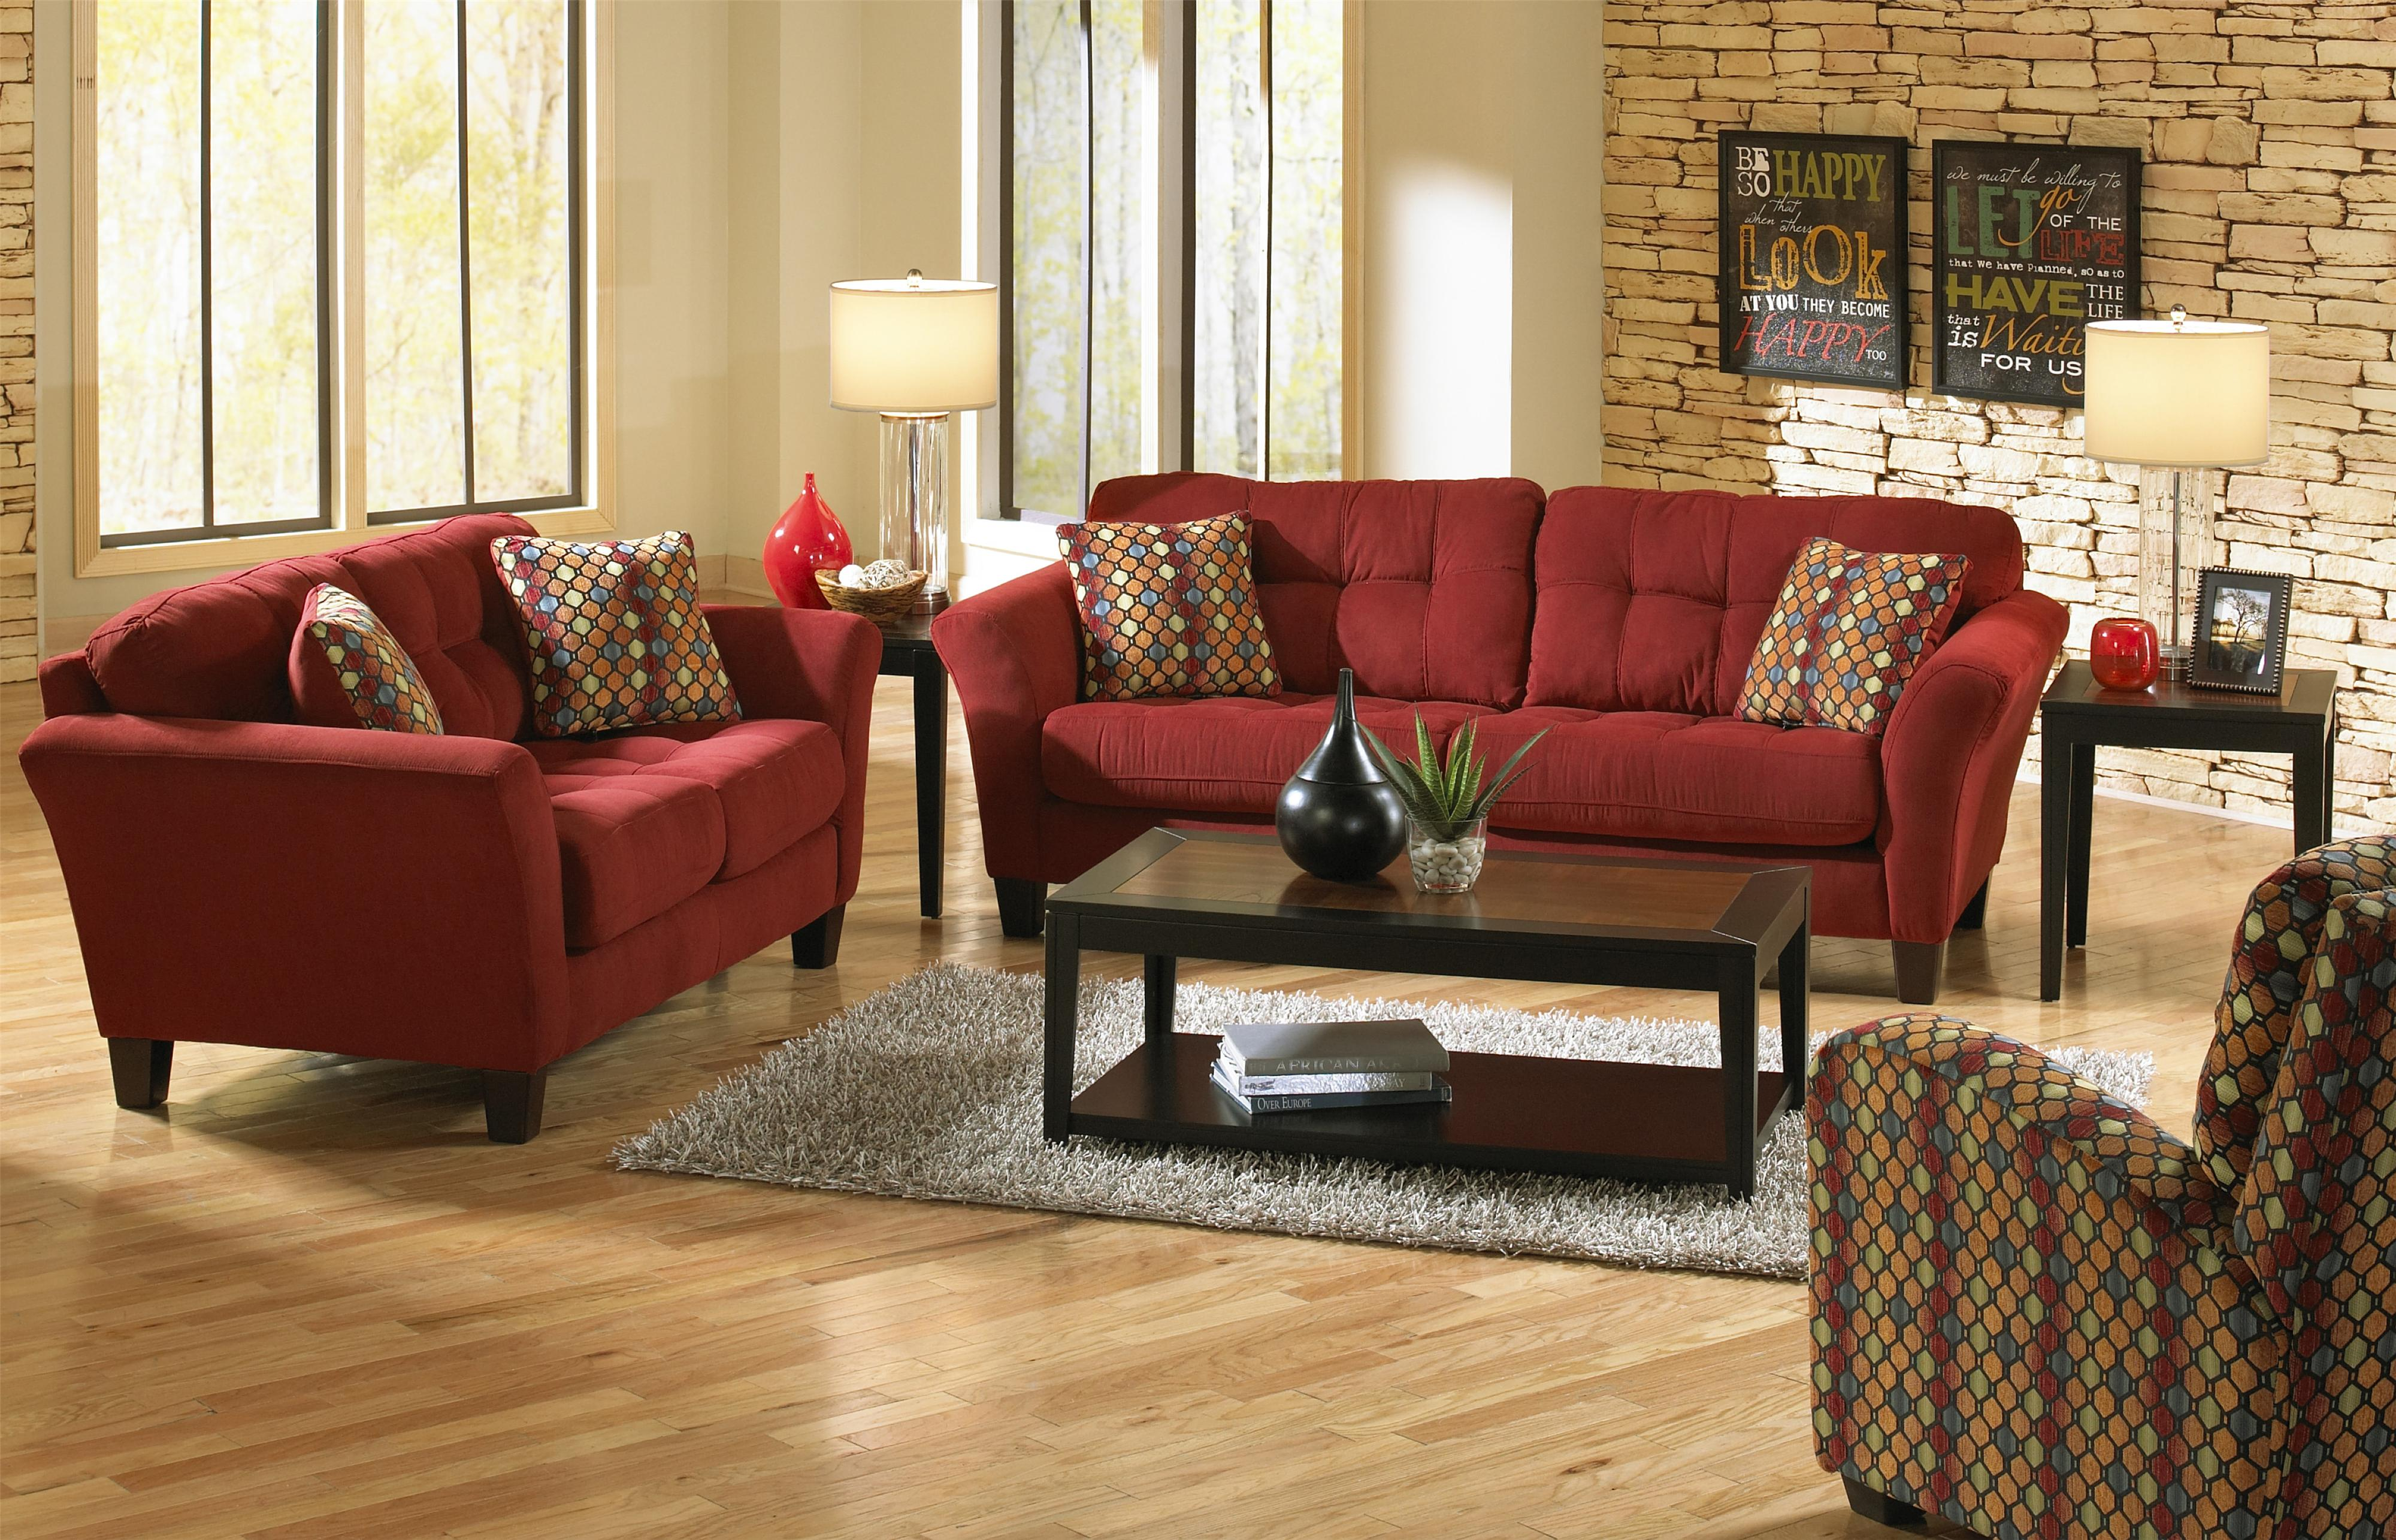 jackson living room furniture sofa with 2 seats and tufted back cushions by jackson 14993